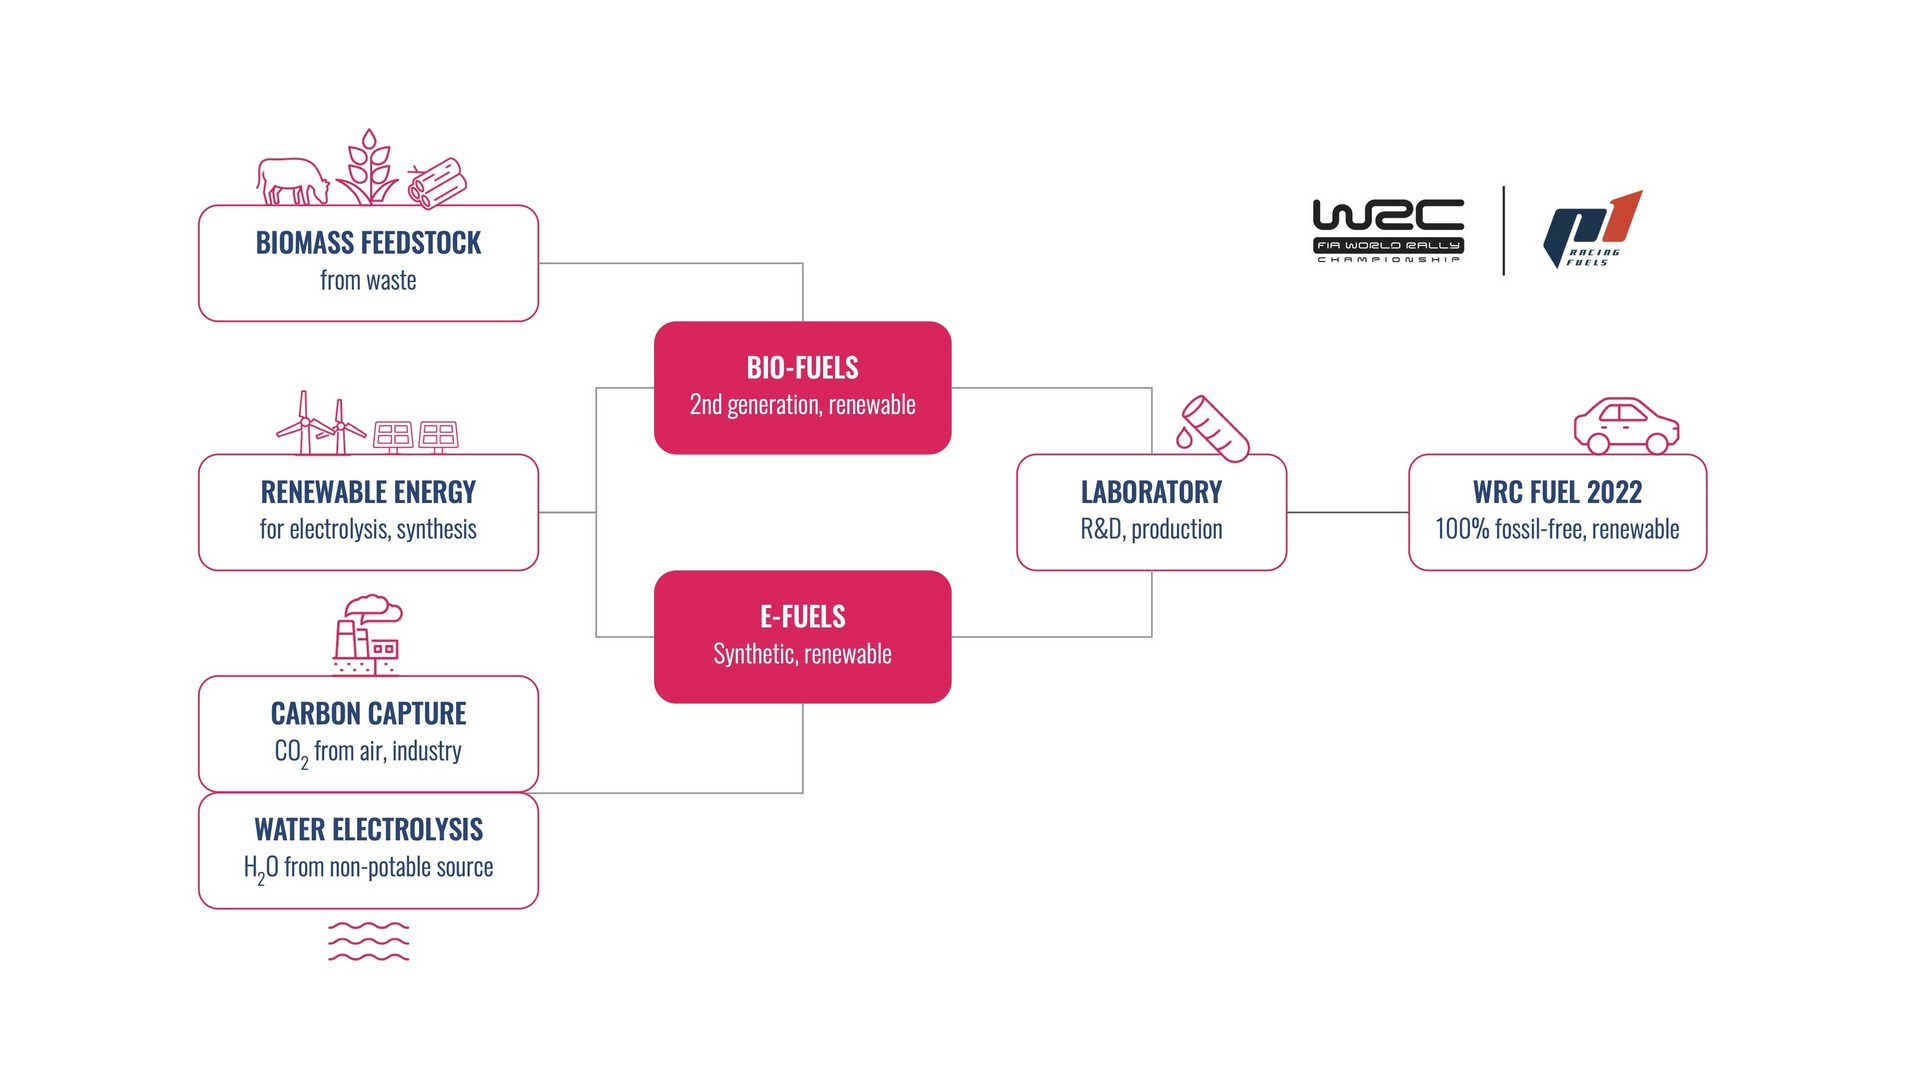 WRC - Sustainable Fuel